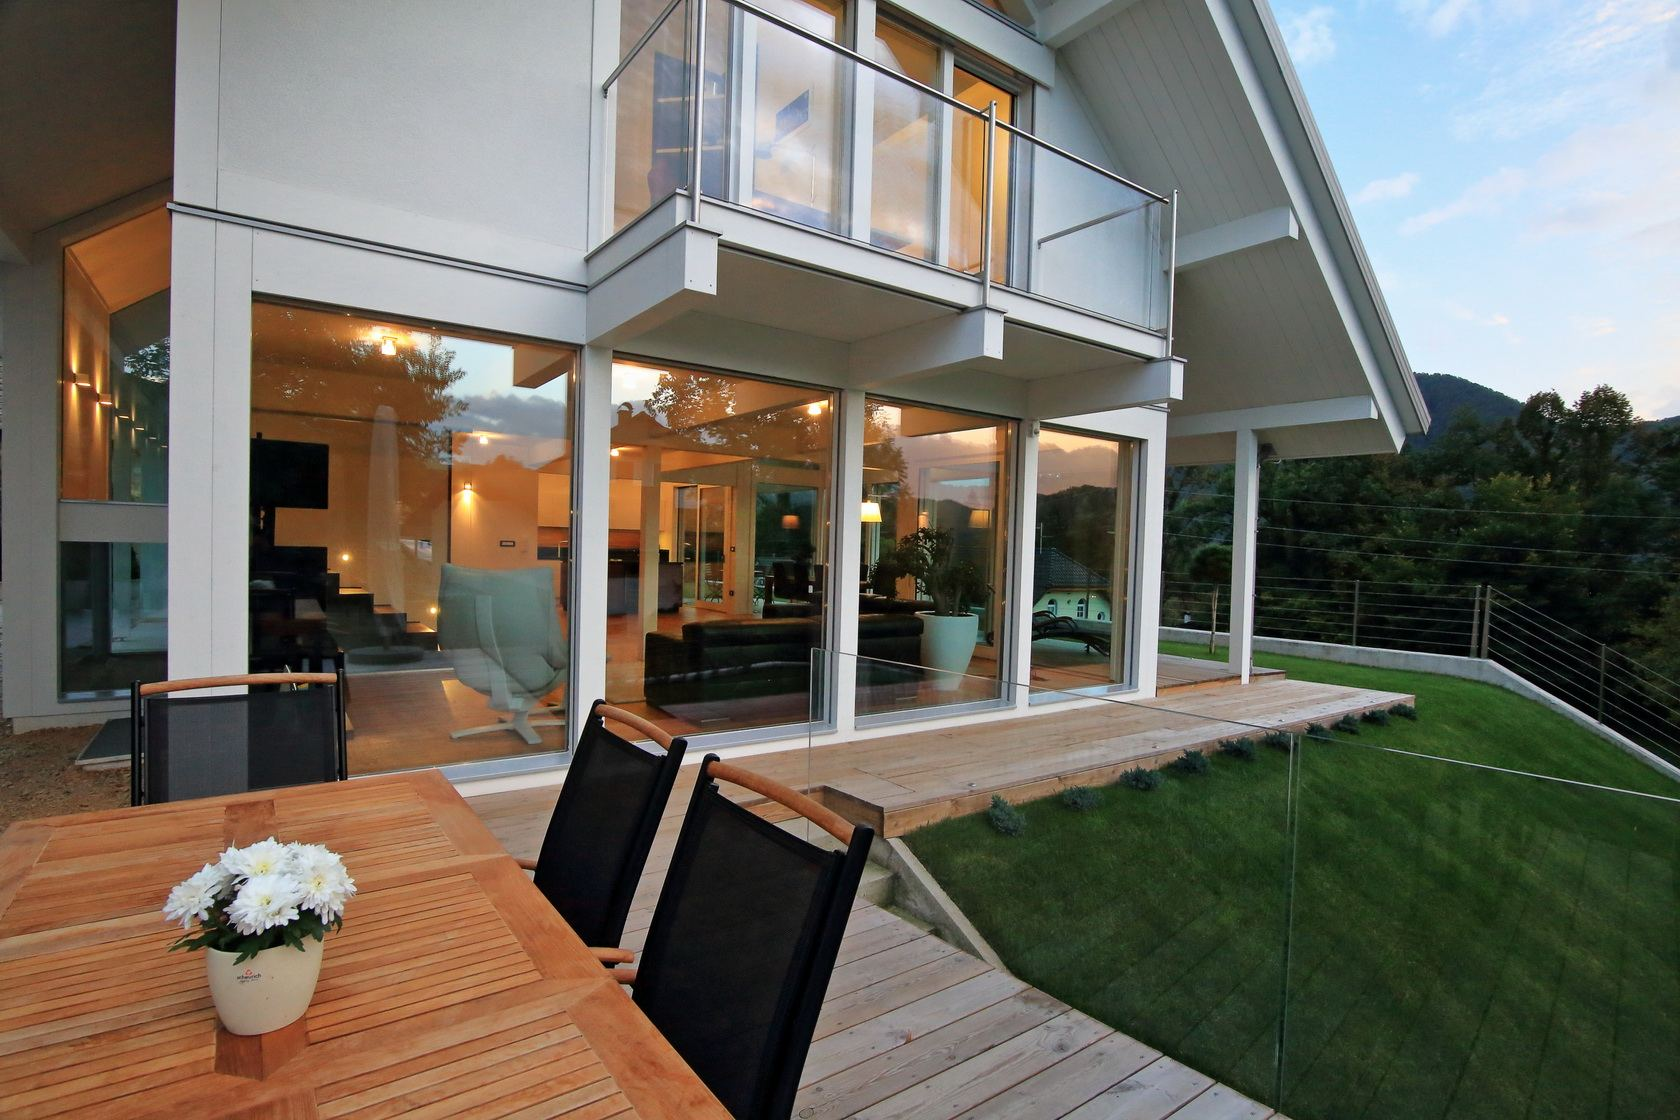 Elegance on 21 - Glass house